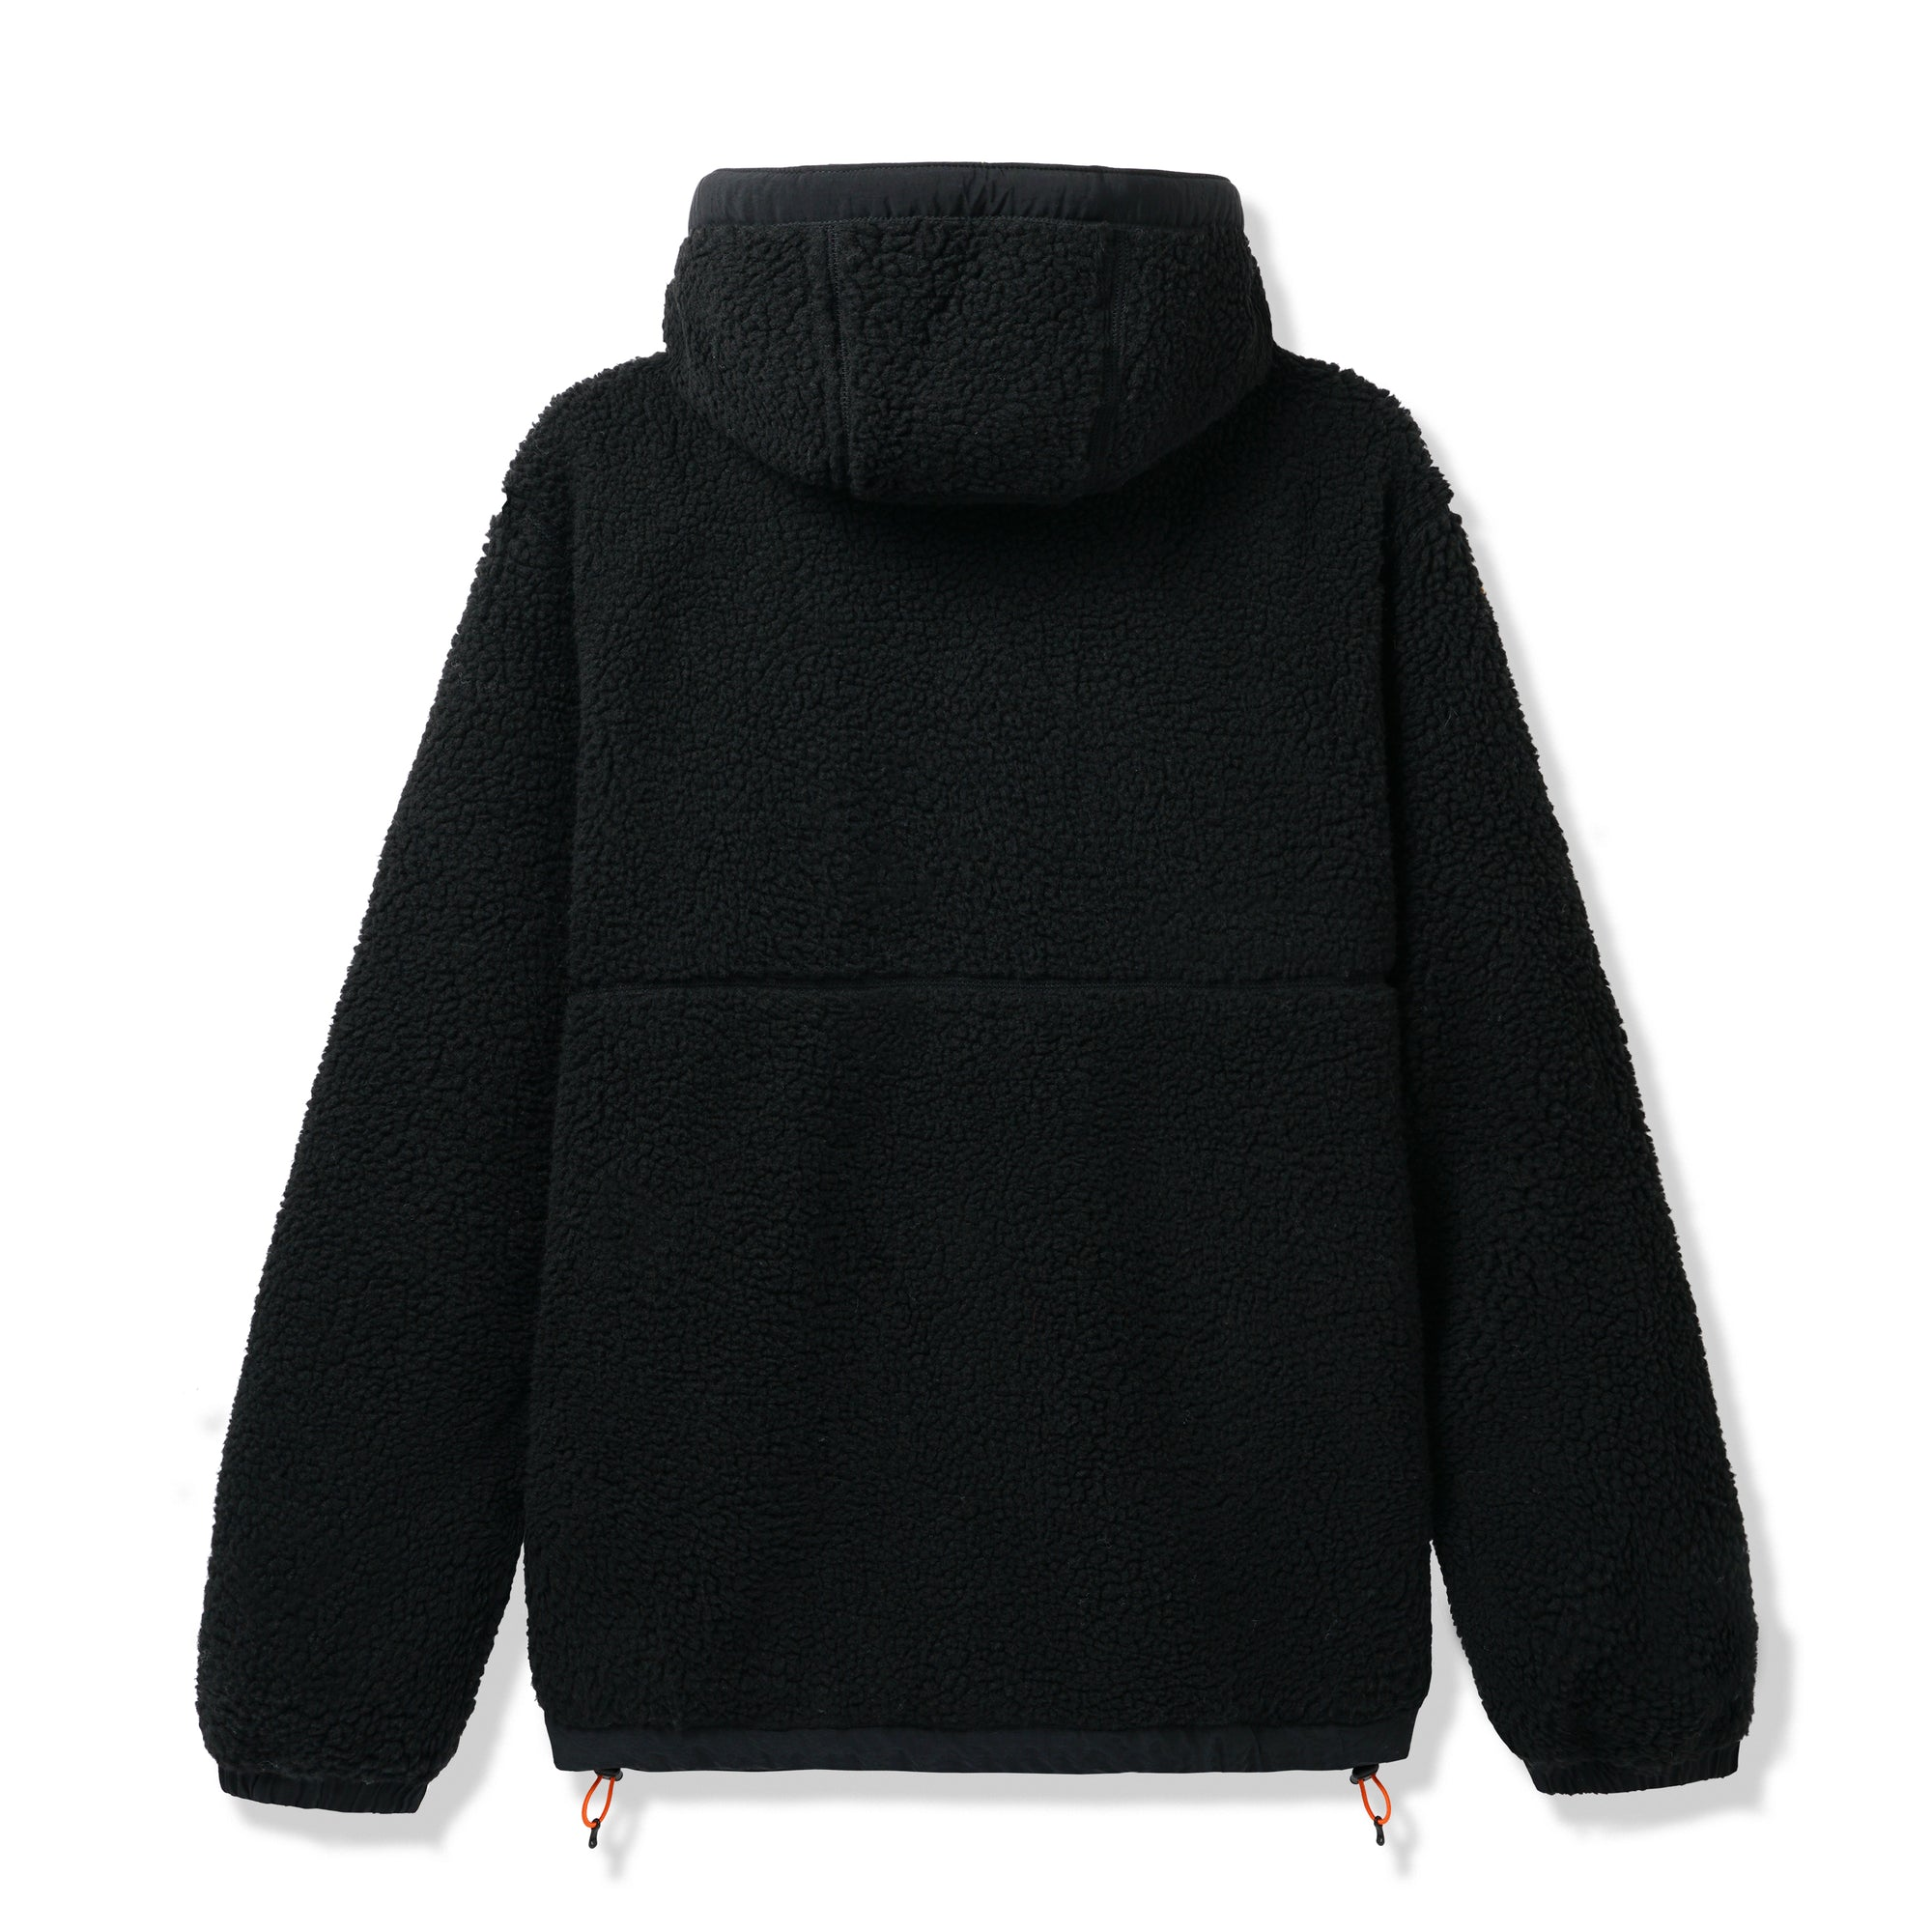 Butter Goods Base Camp Reversible Jacket Product Photo #4